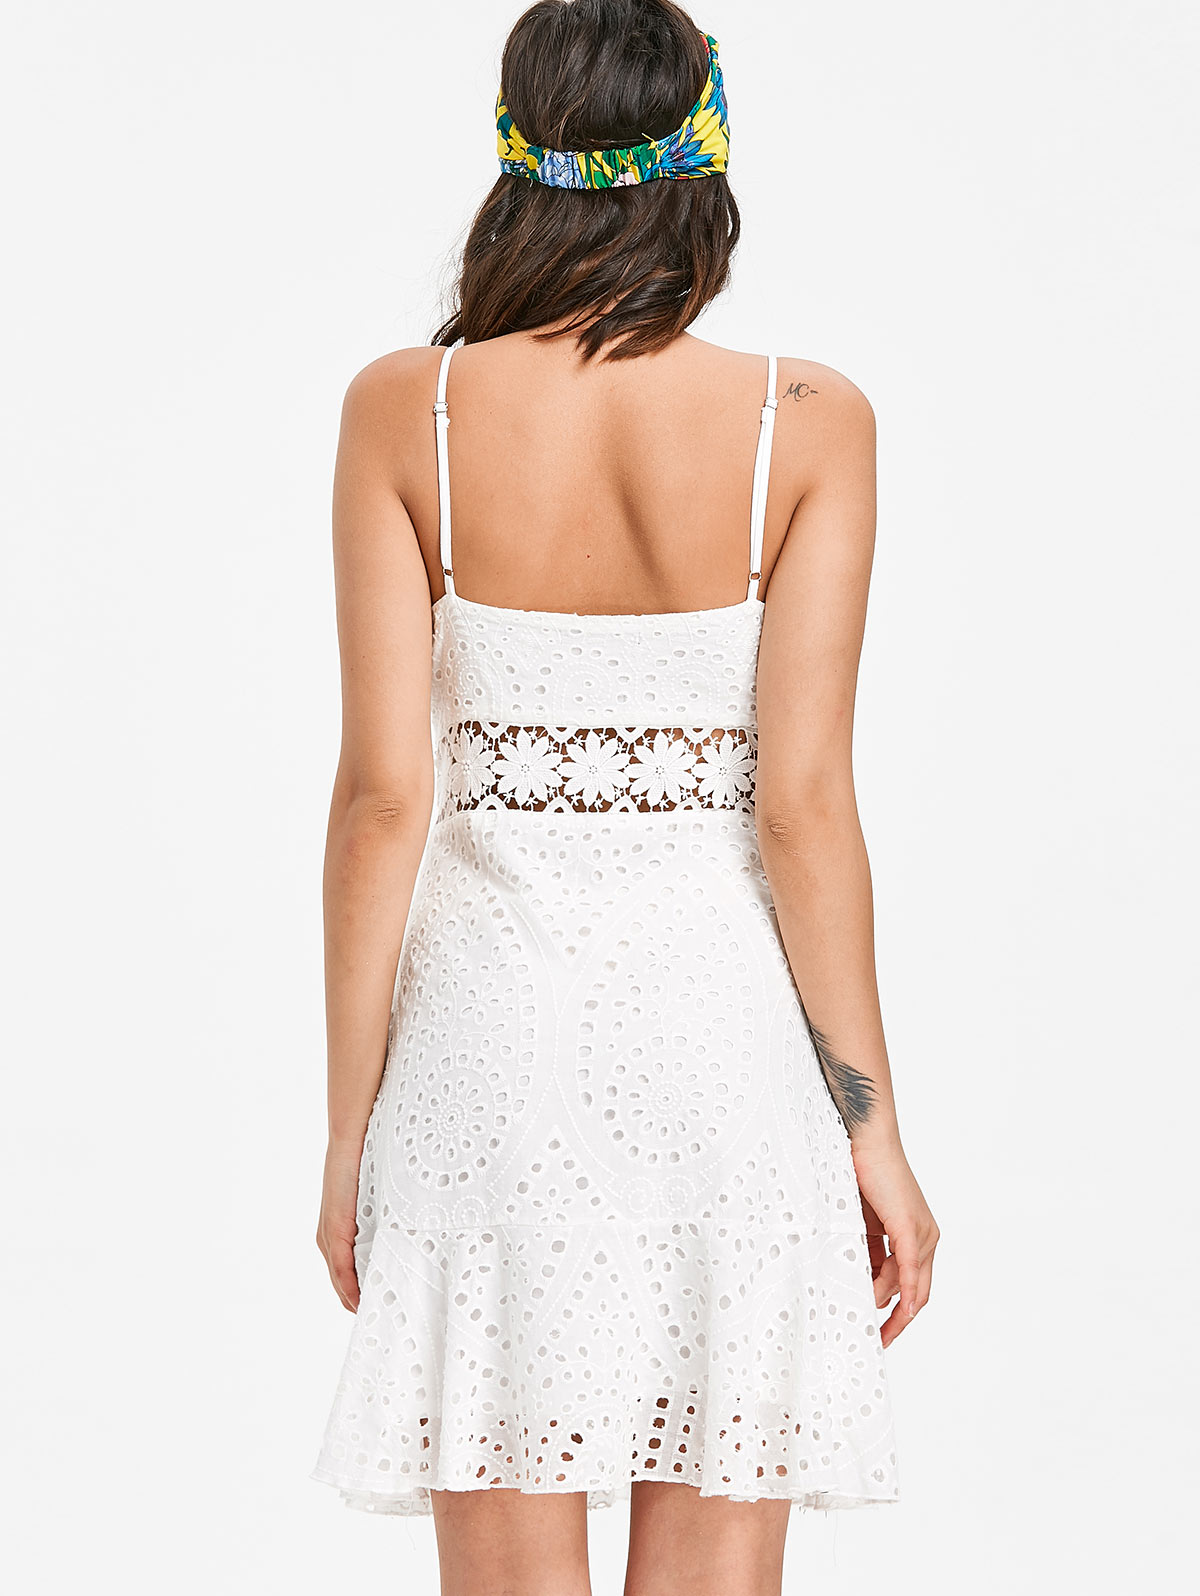 7ae01c7132d99 US $18.99 30% OFF|AZULINA Women Dress Broderie Anglaise Lace Slip Dress  Beach Summer Day Sumdress Robe Femme 2018 New Cute White Vestidos Mujer-in  ...